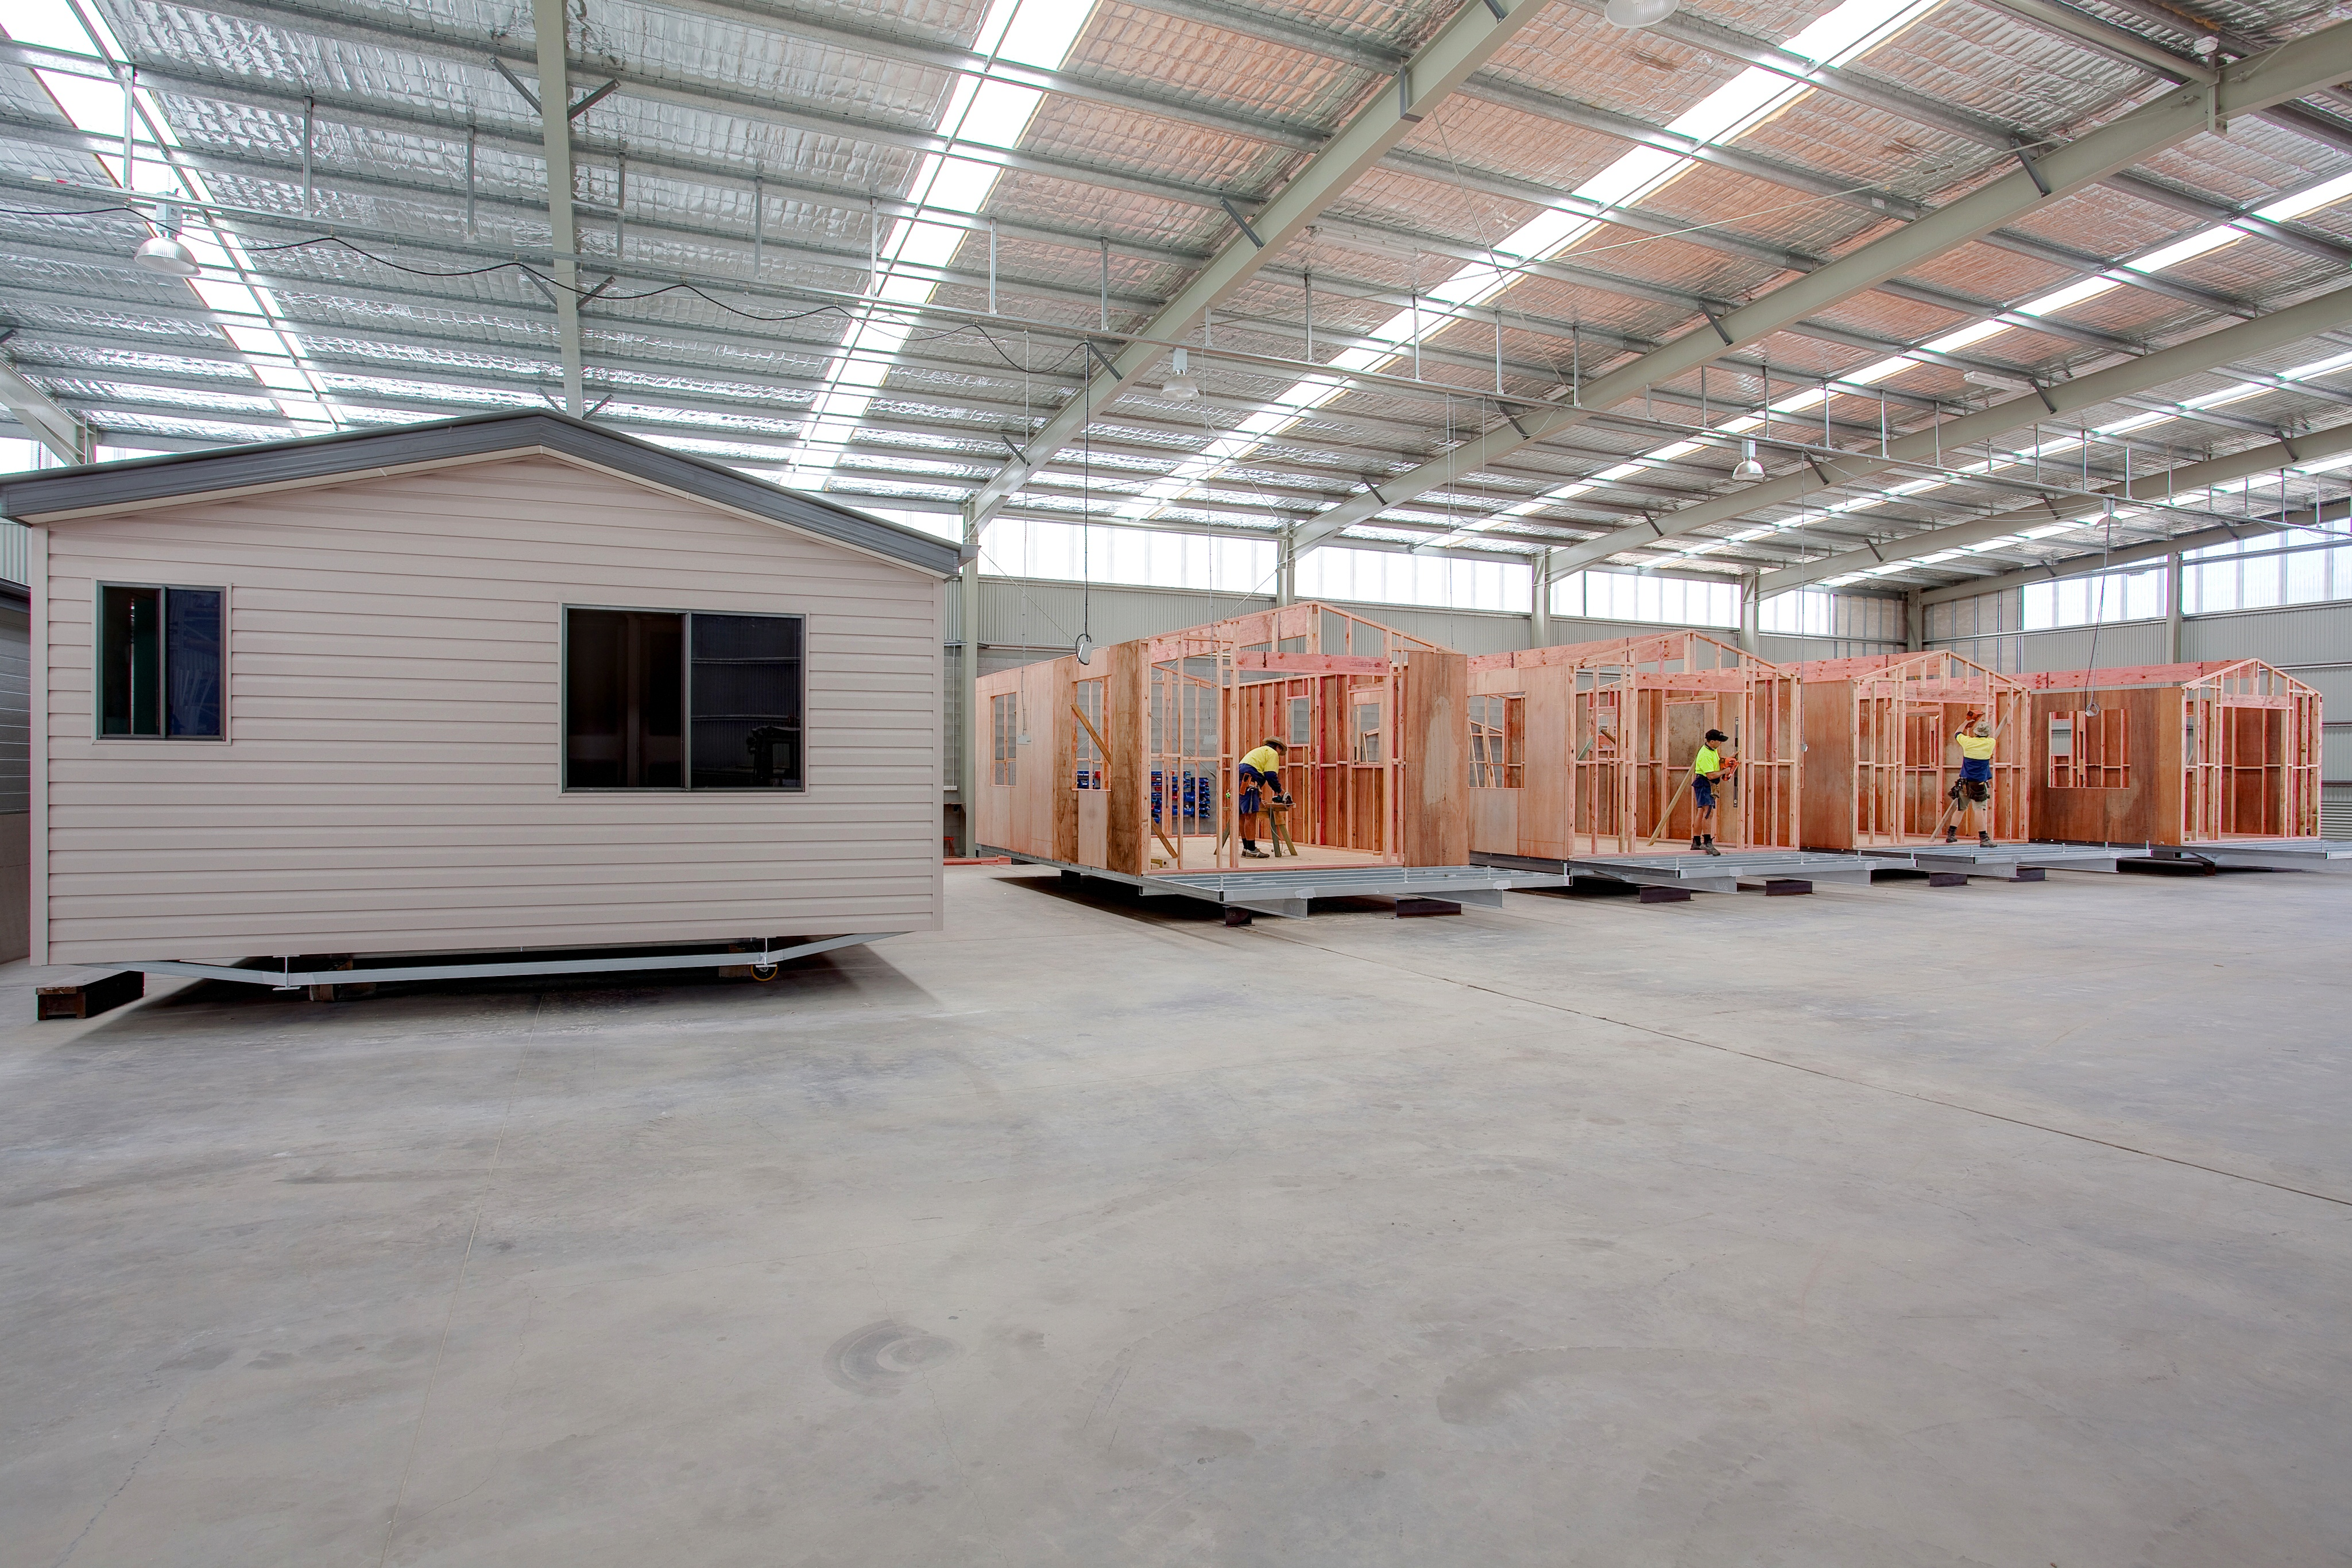 Modular Cabins being constructed in factory